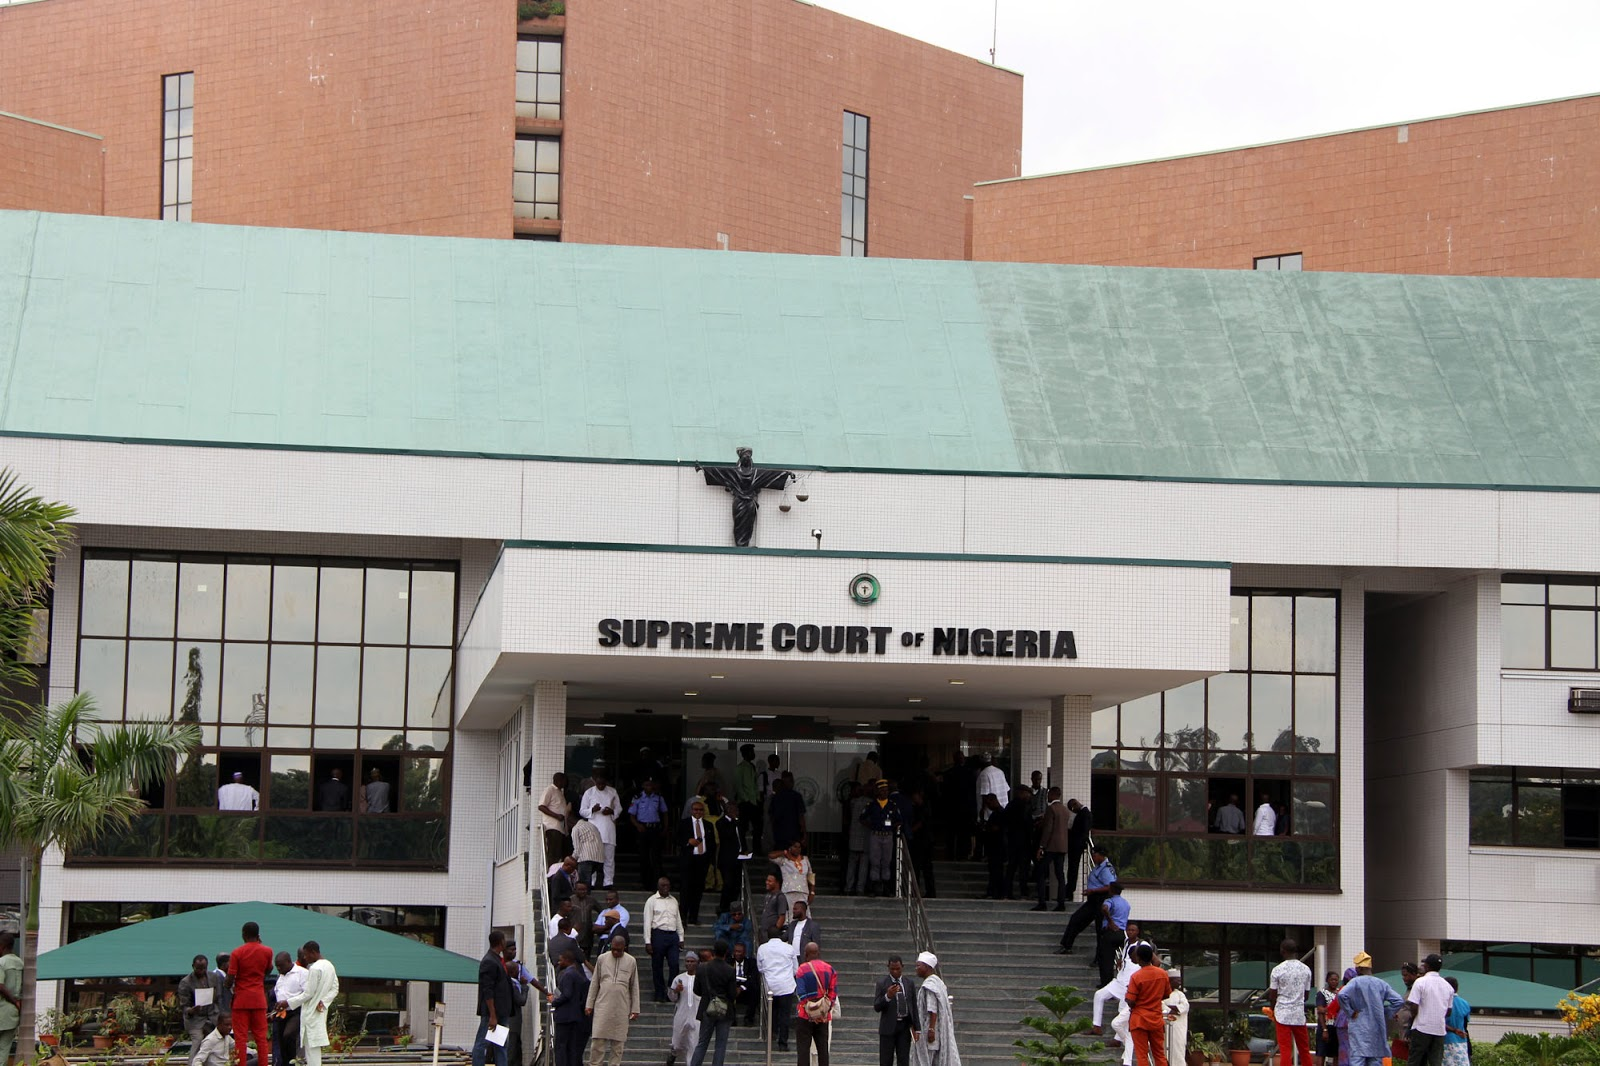 [BREAKING] Imo: Supreme Court to deliver judgment on Ararume's appeal against Ihedioha's election